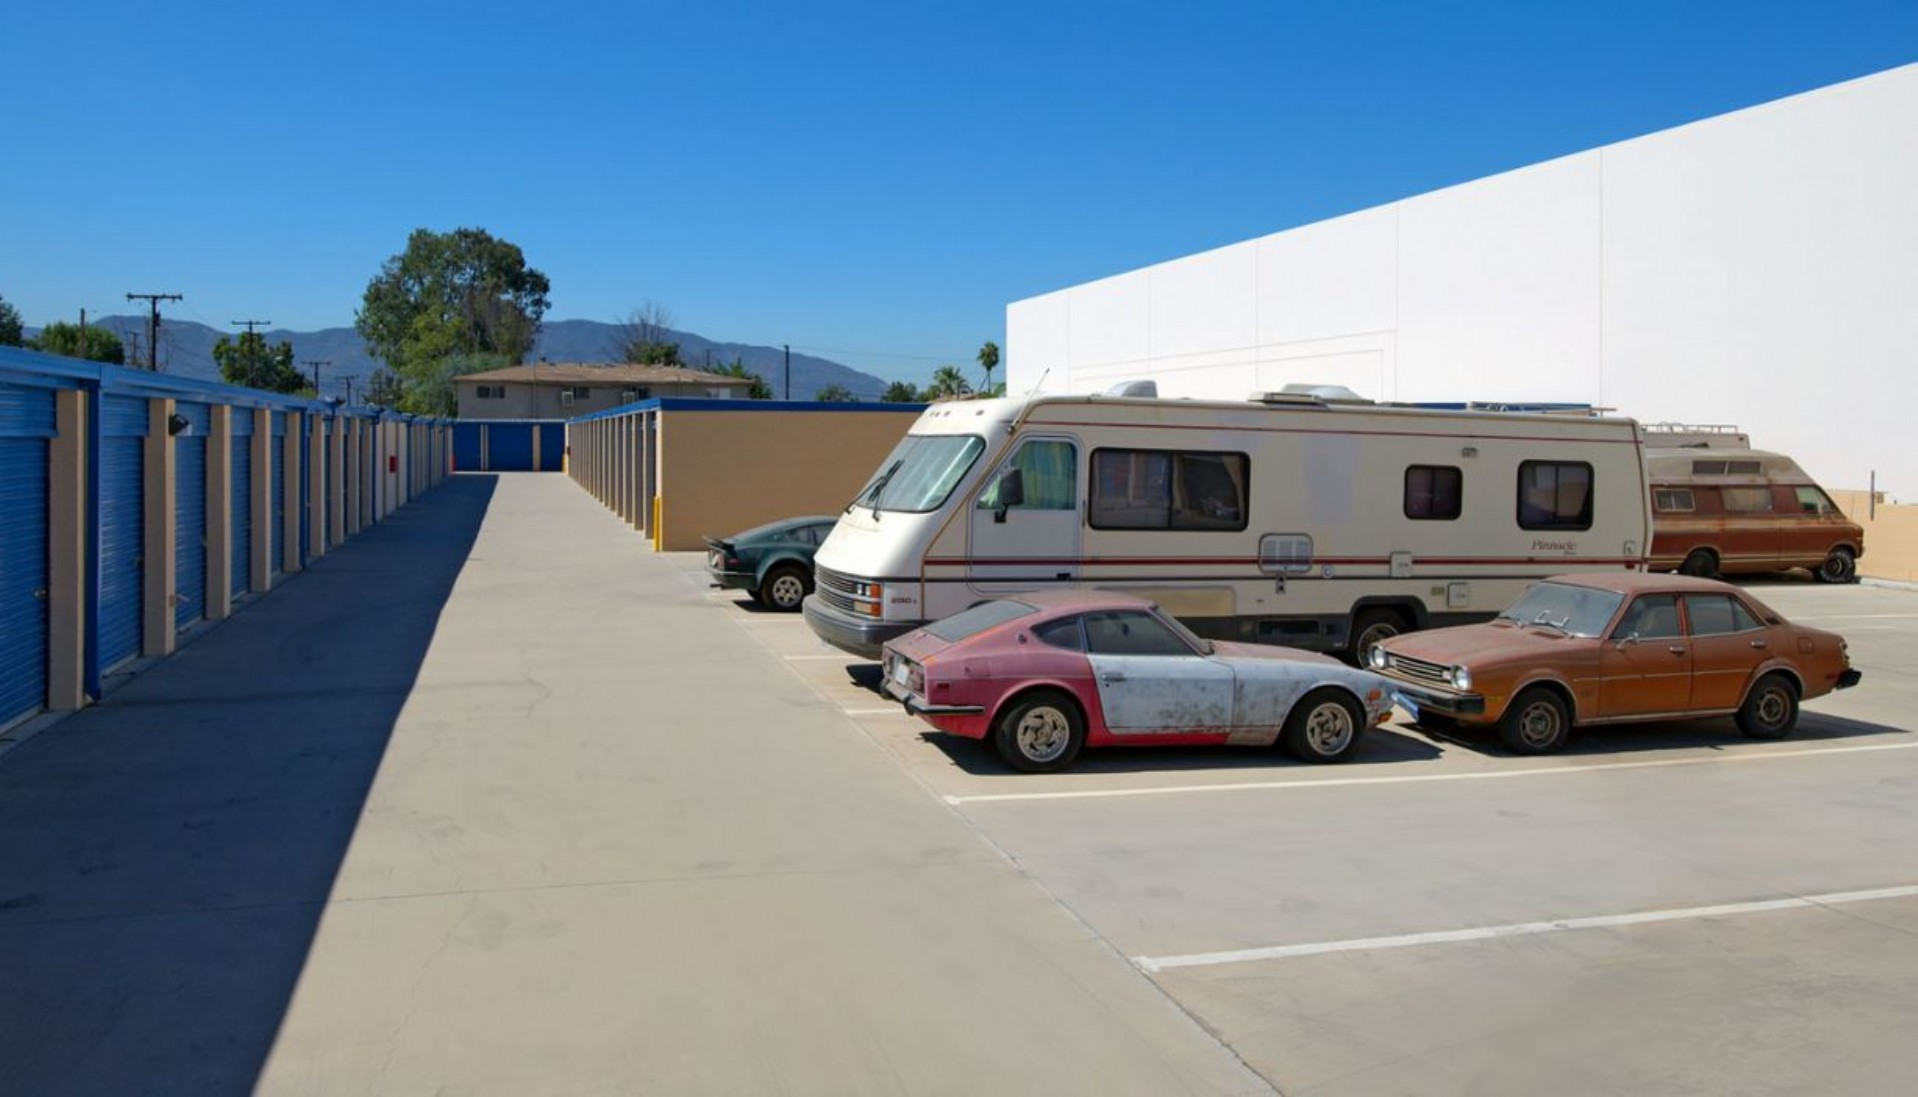 Cars and a large RV parked in vehicle storage spaces